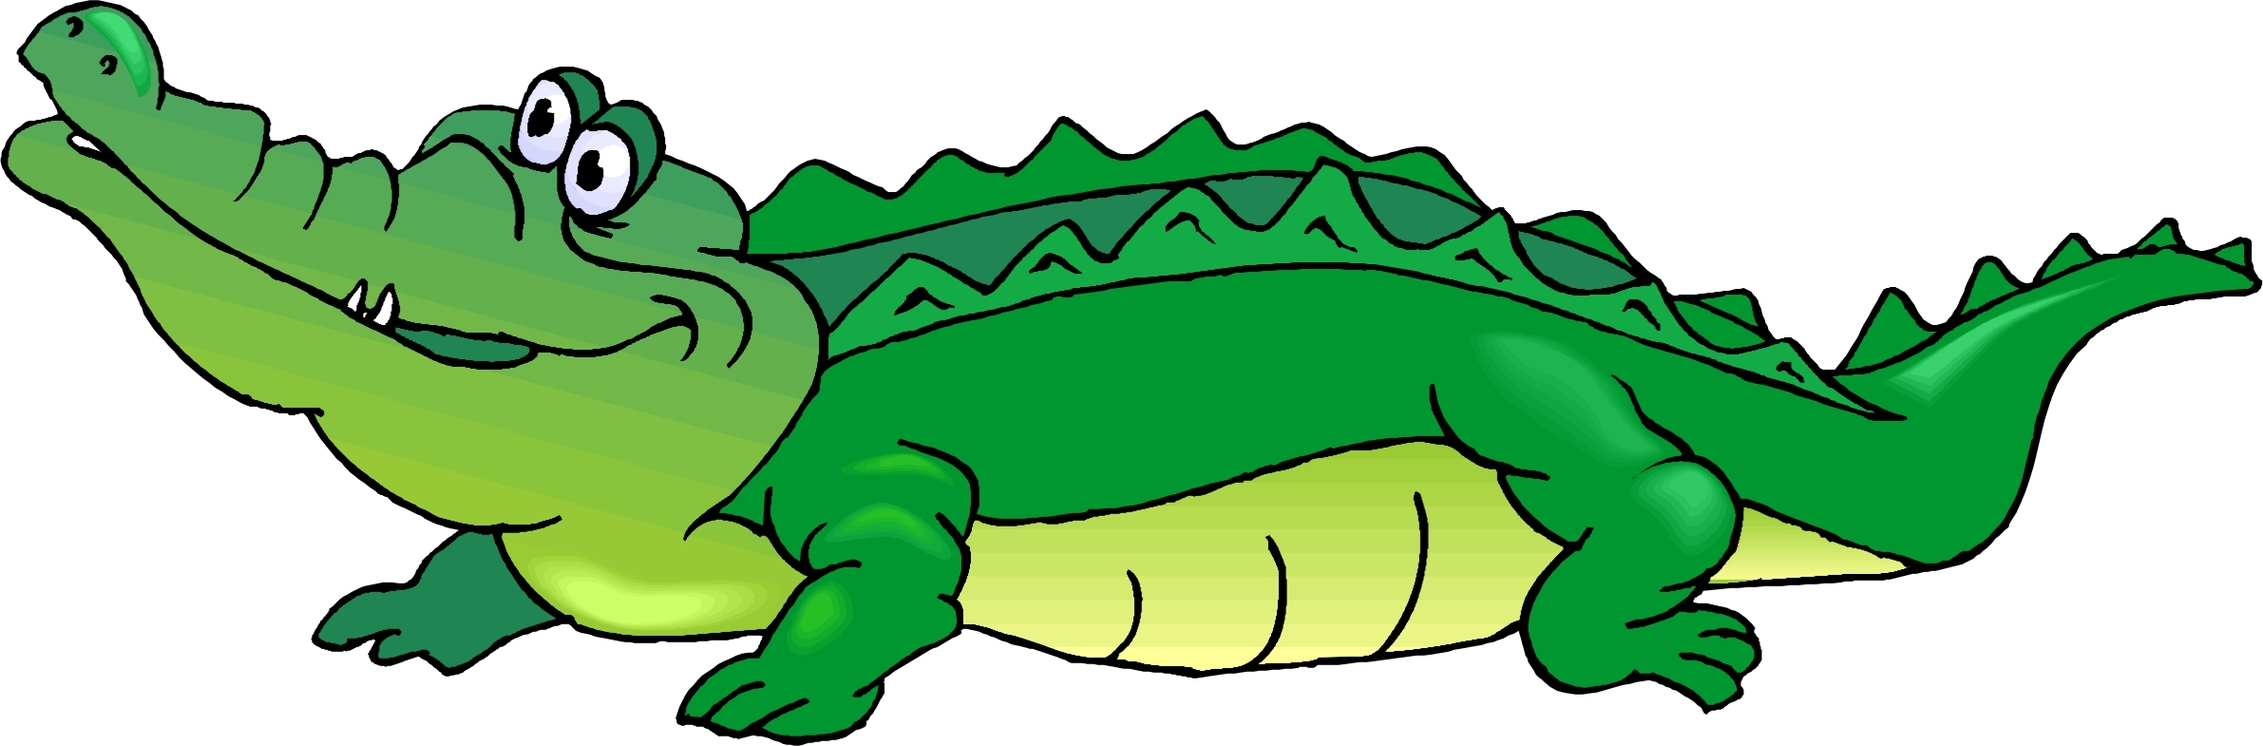 Crocodile clipart croccodile. Cute alligator free download